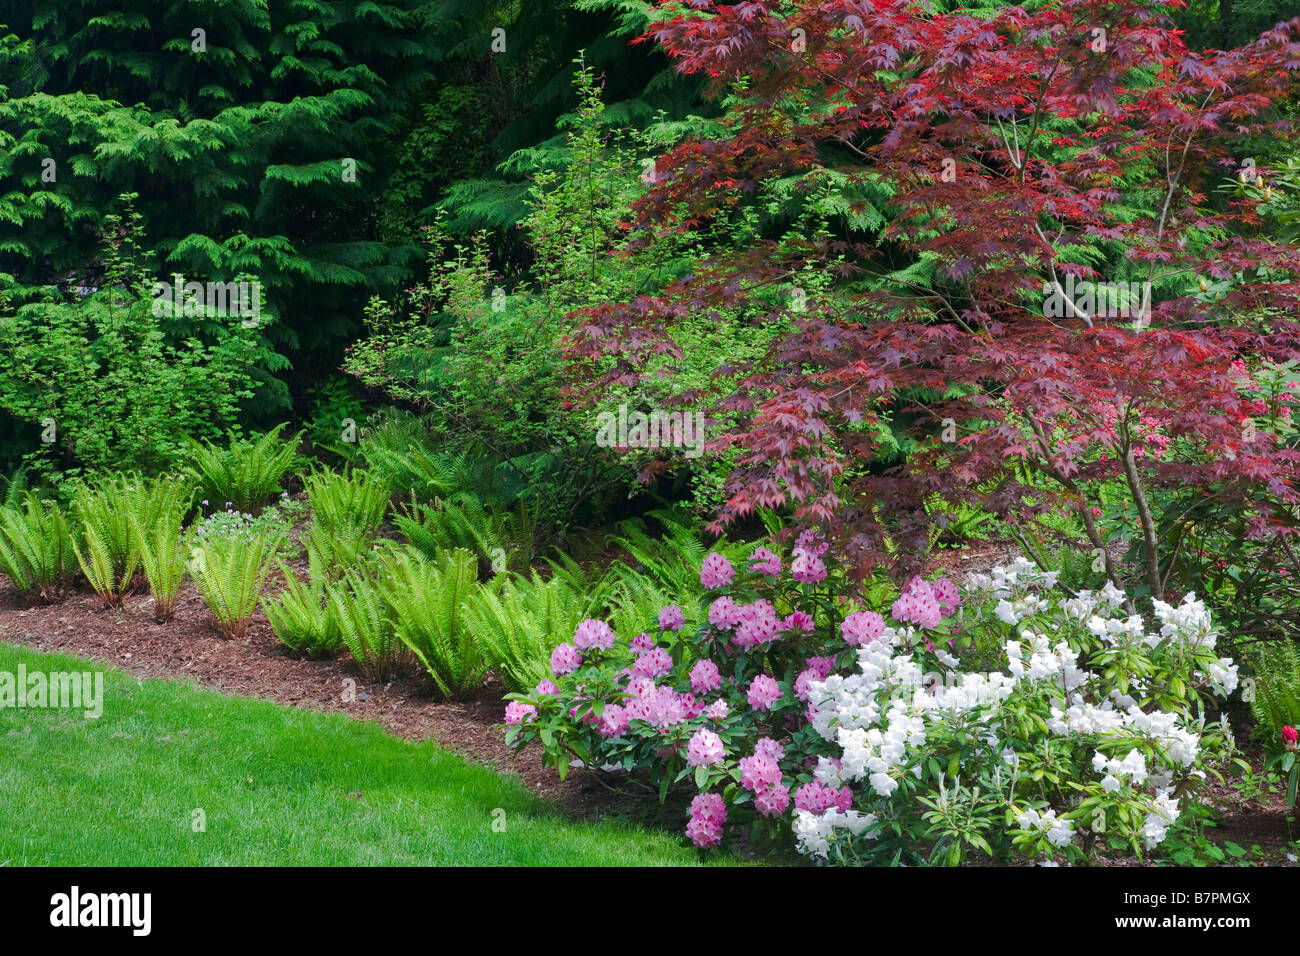 Vashon Island WA: Pacific Northwest forest garden featuring flowering rhododendrons Japanese maples and sword ferns - Stock Image